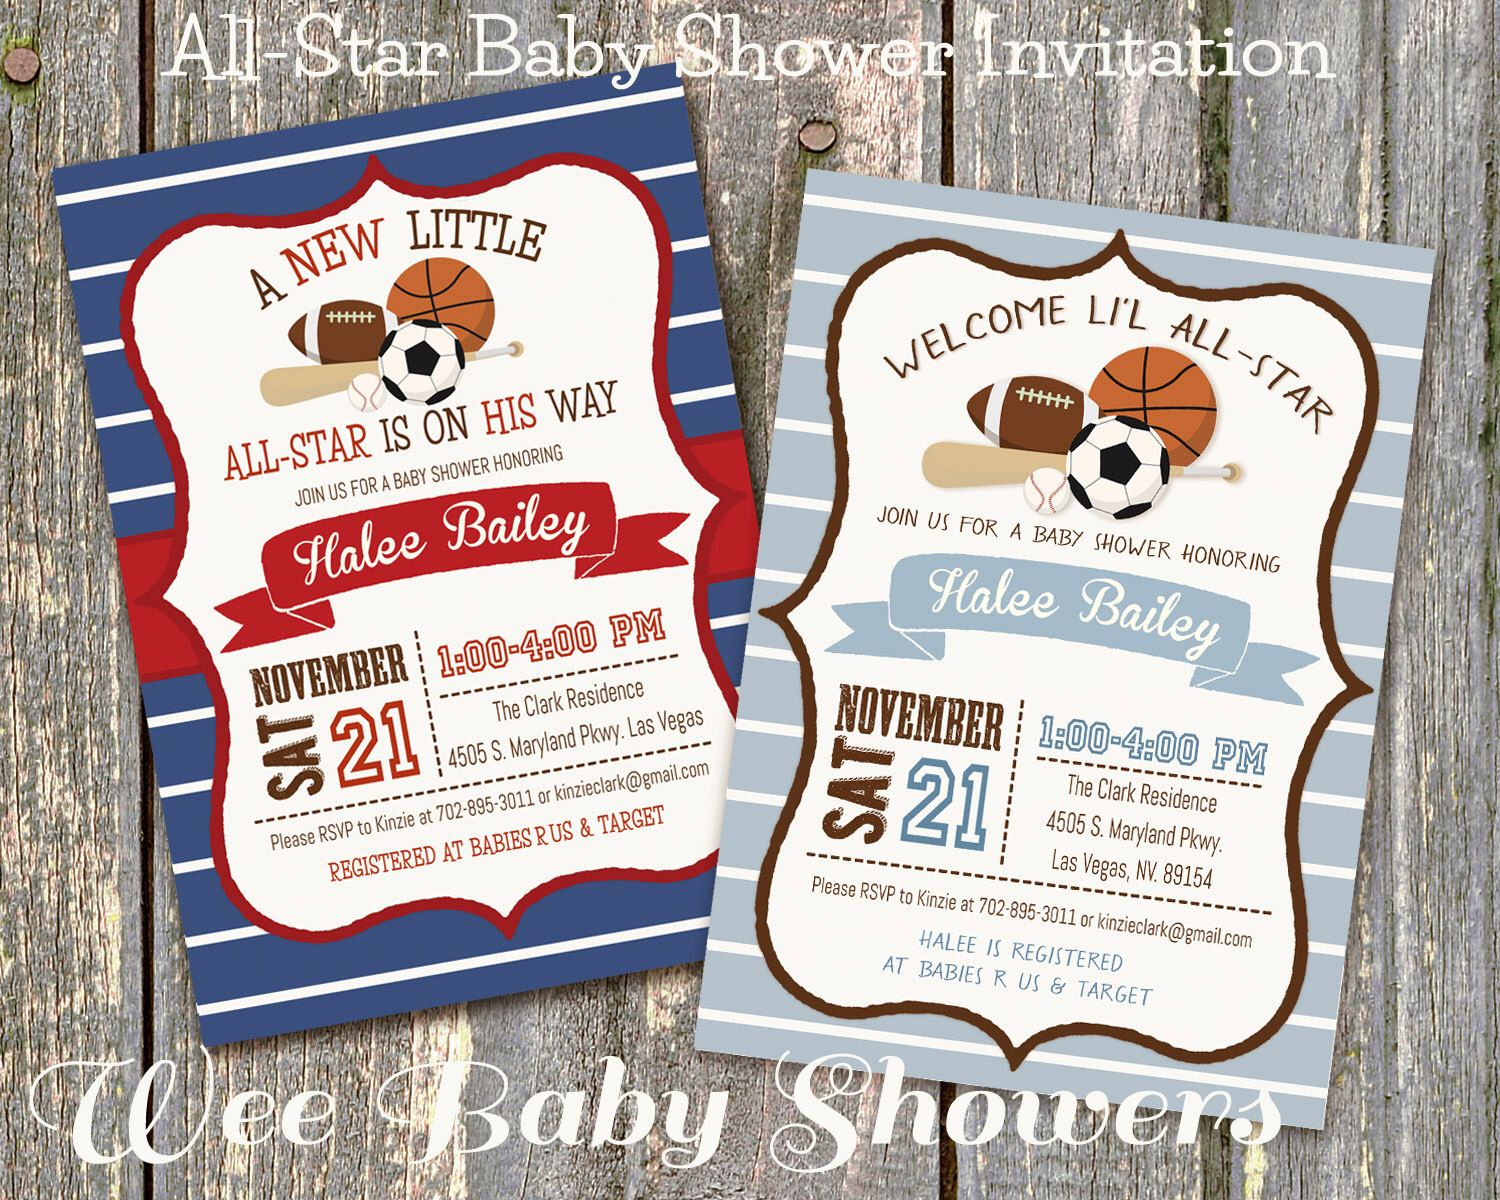 Sports Baby Shower Invitation, Little All-Star Baby Shower by WeeBabyShower on Etsy https://www.etsy.com/listing/264150261/sports-baby-shower-invitation-little-all